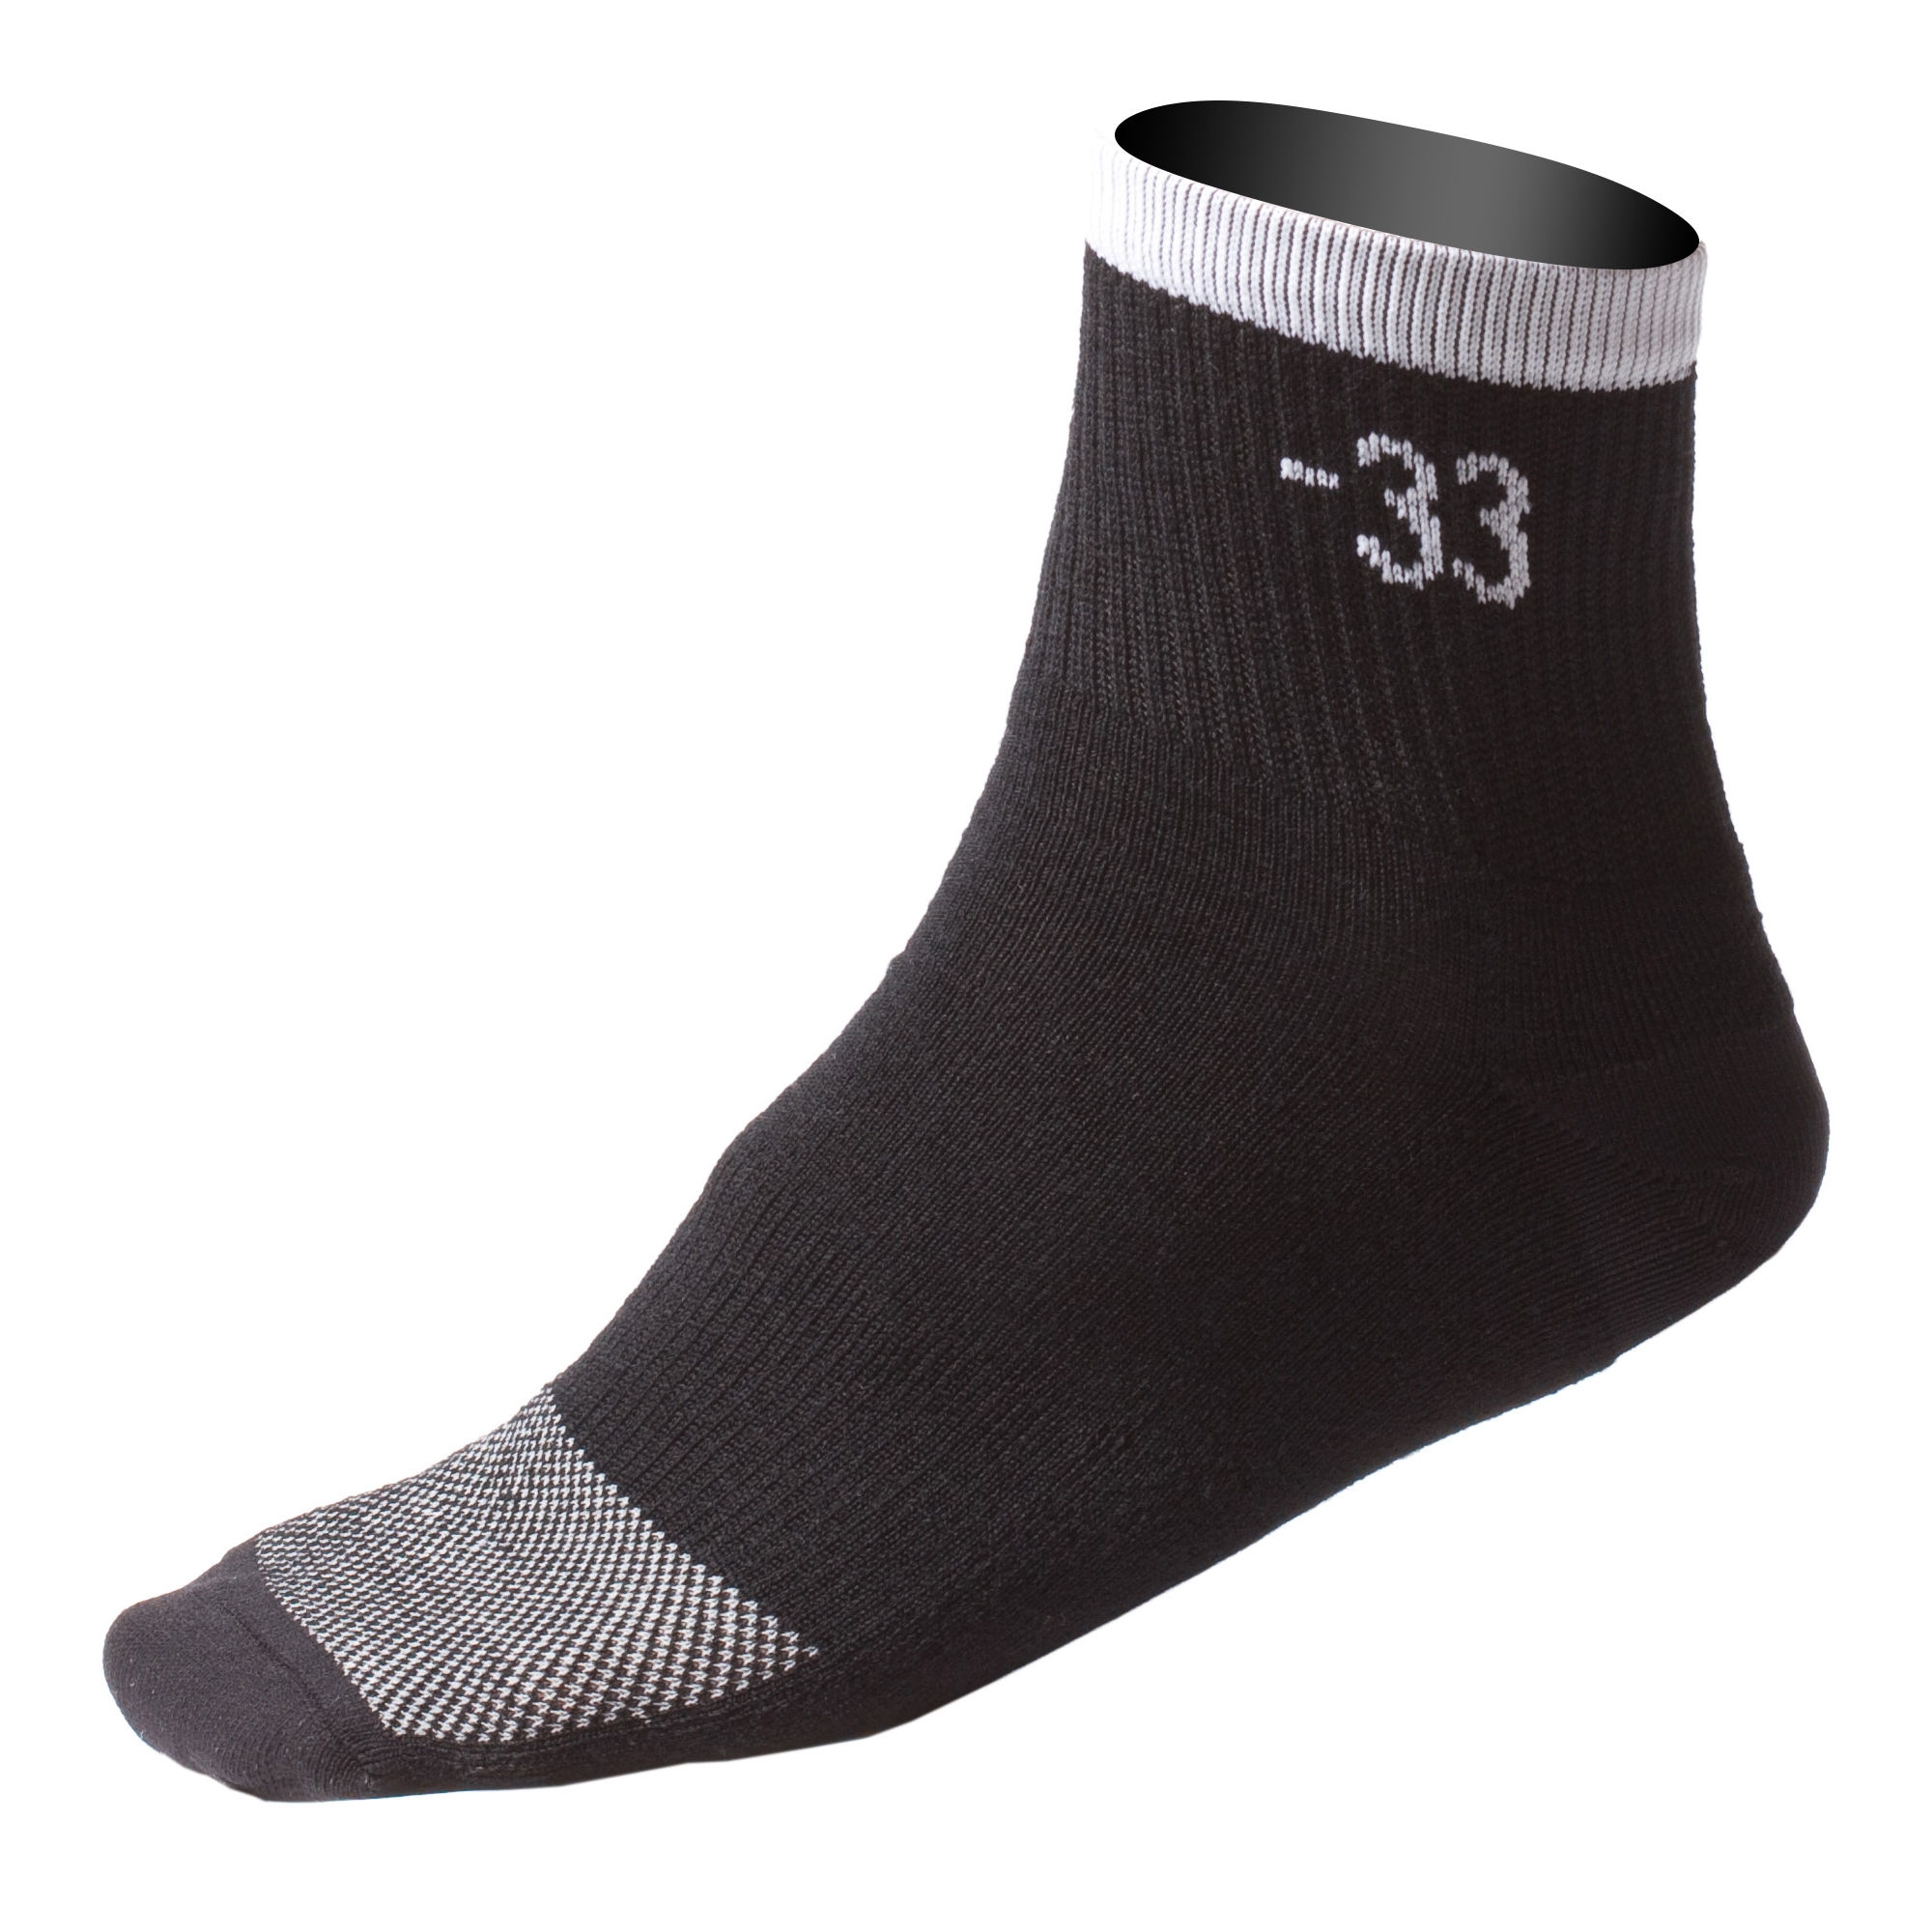 Muck Boot Unisex Adult Low Rise Trail Socks - Walmart.com